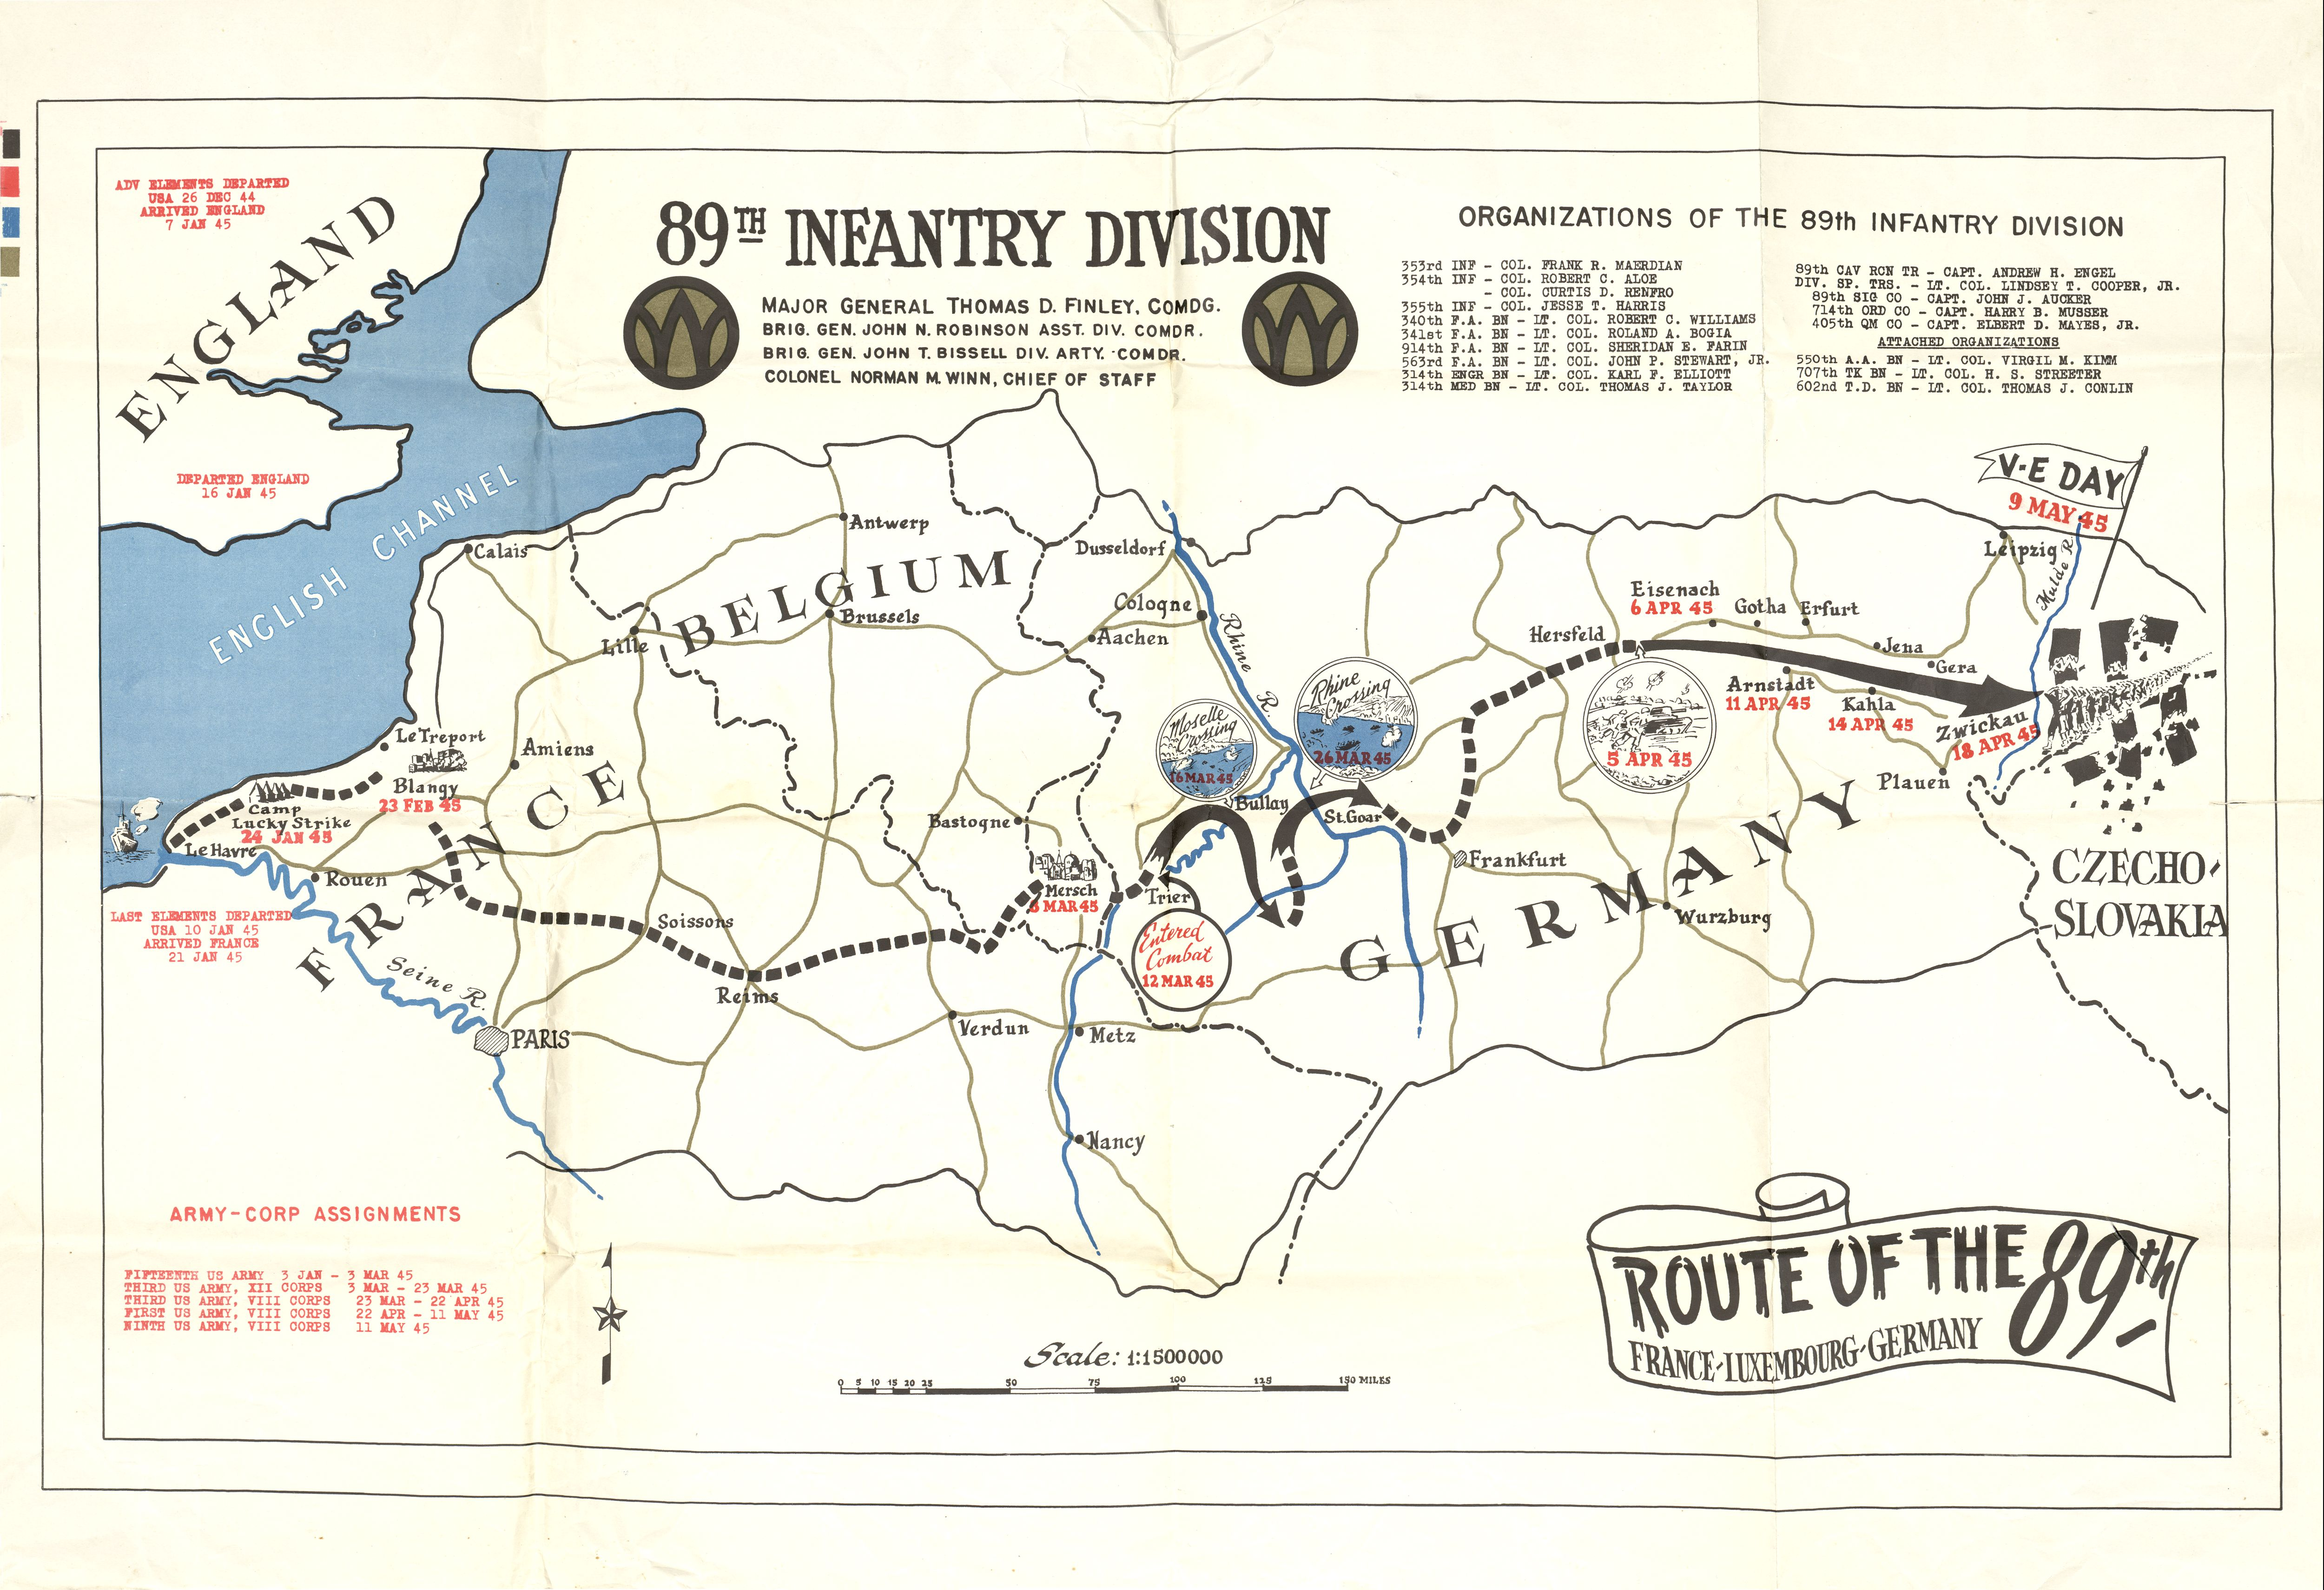 World War II Maps - Perry-Castañeda Map Collection - UT Library Online